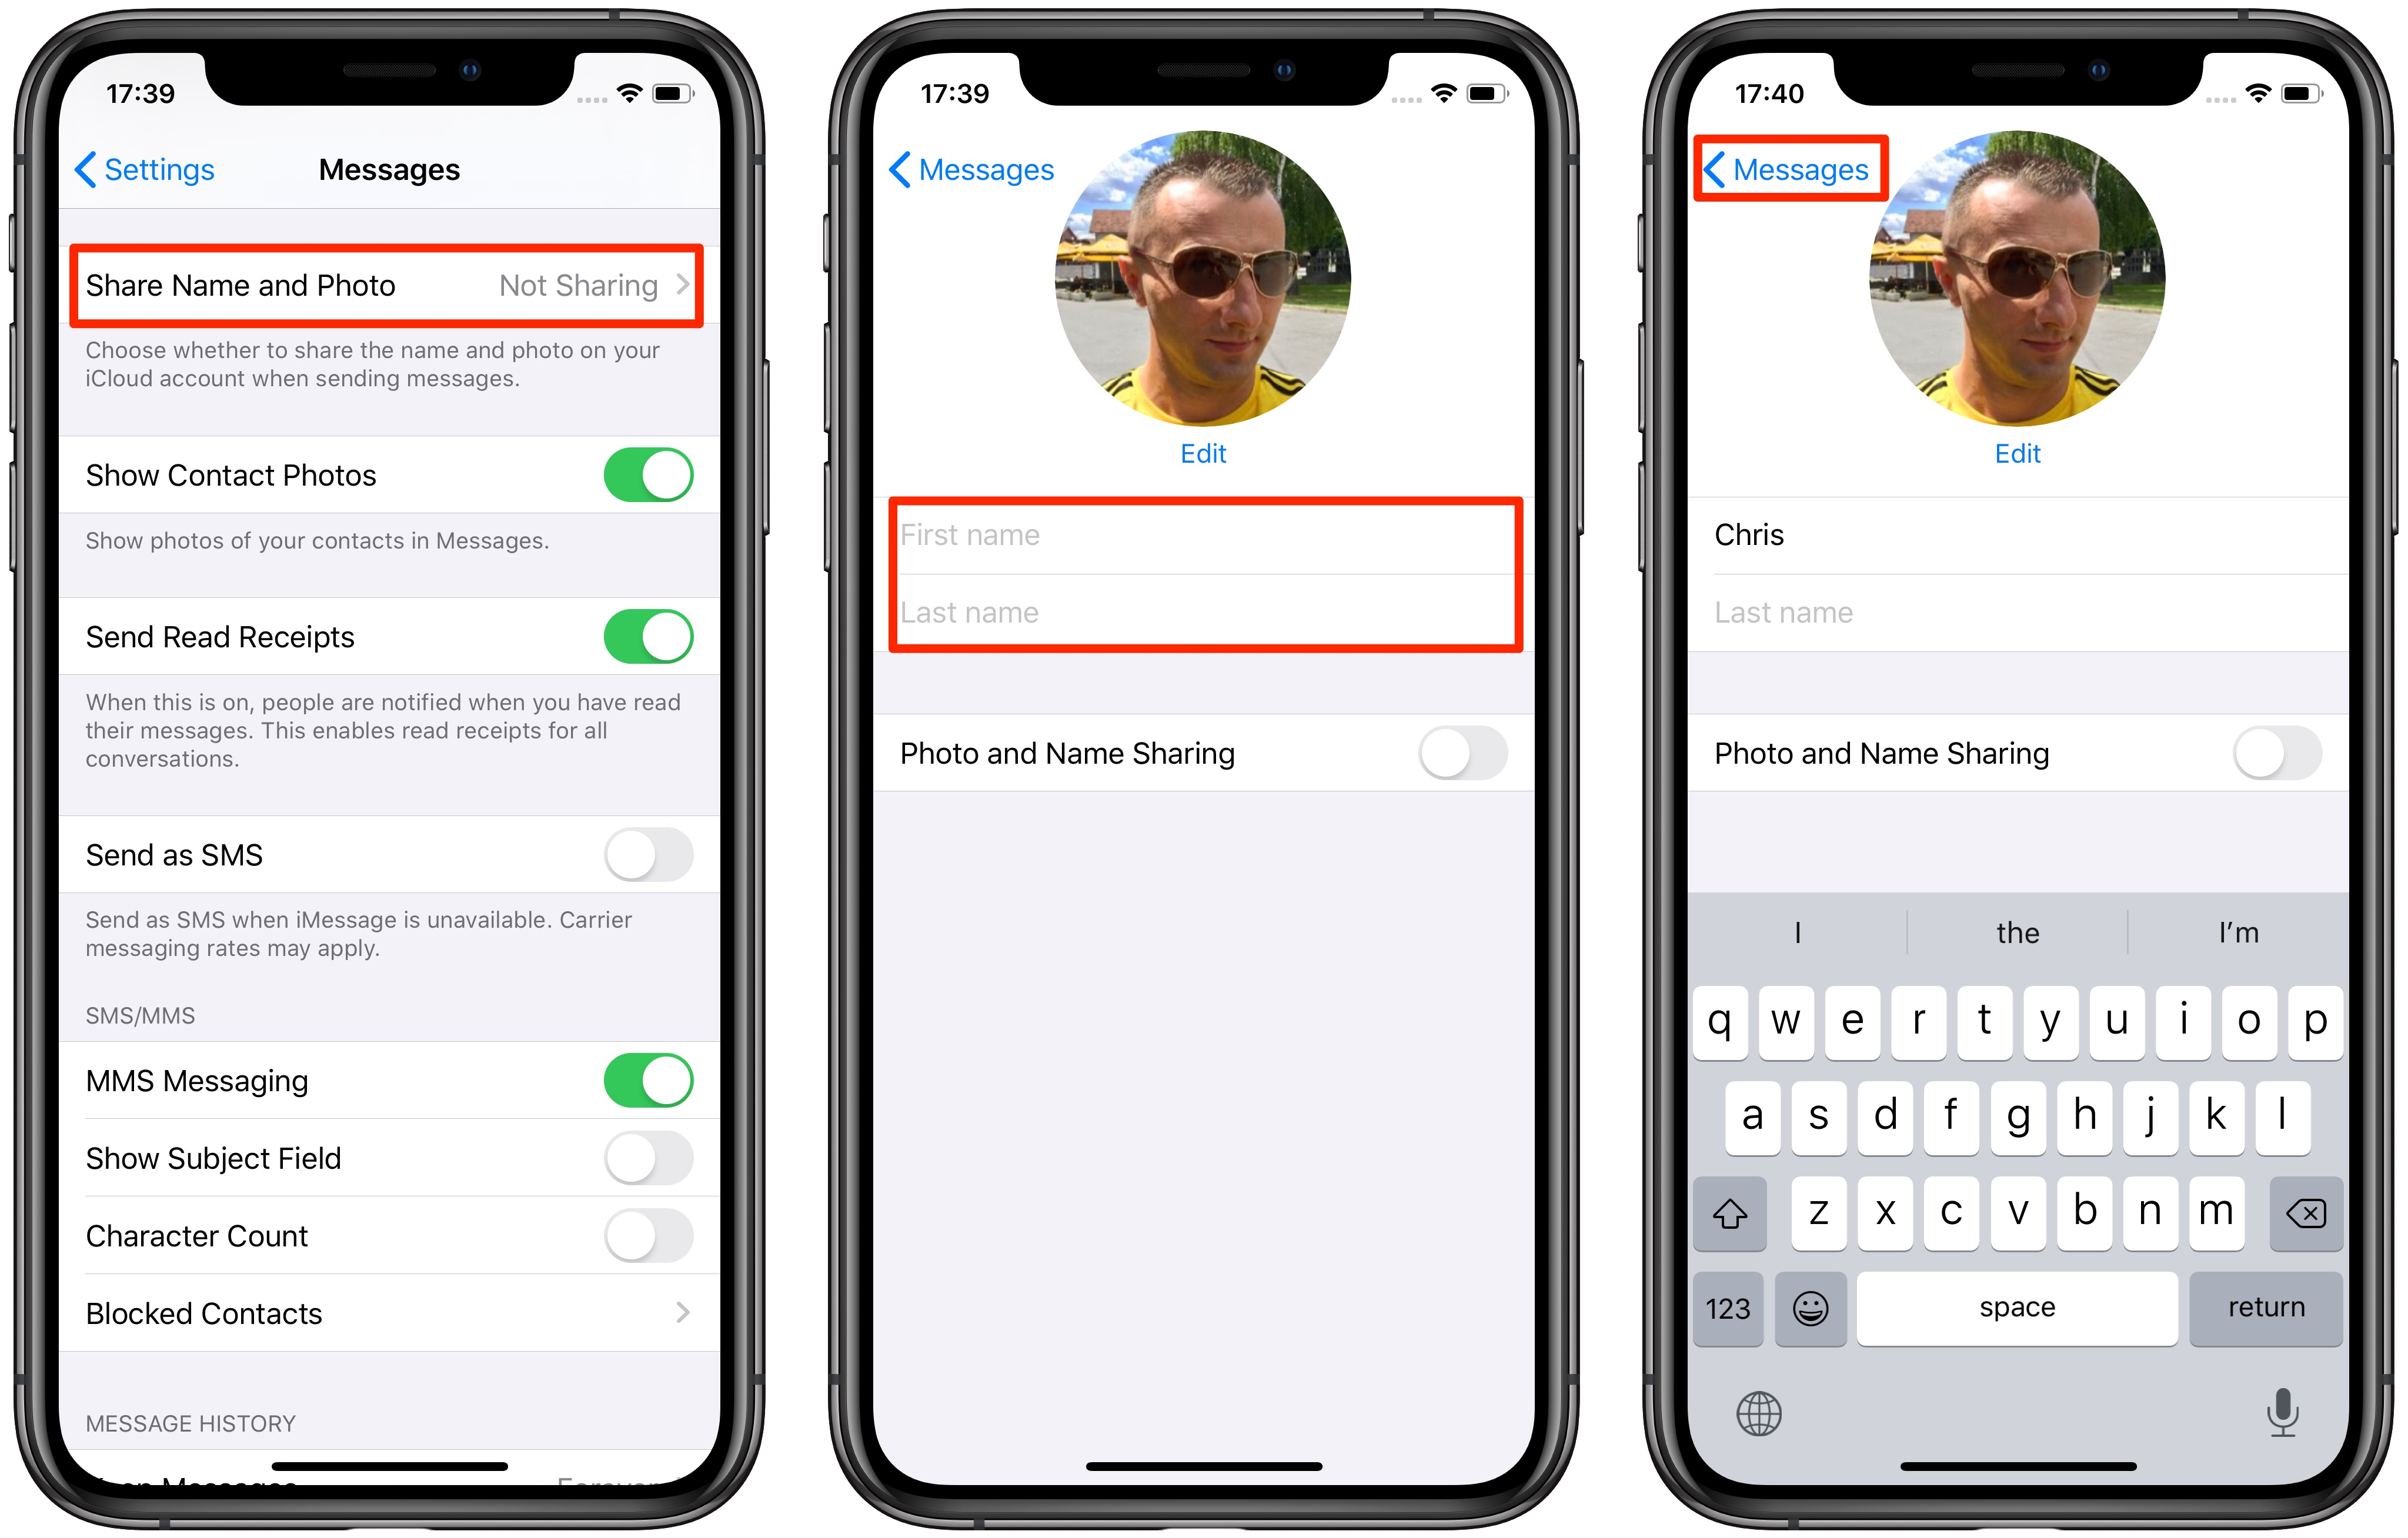 Creating an iMessage profile with a custom profile picture